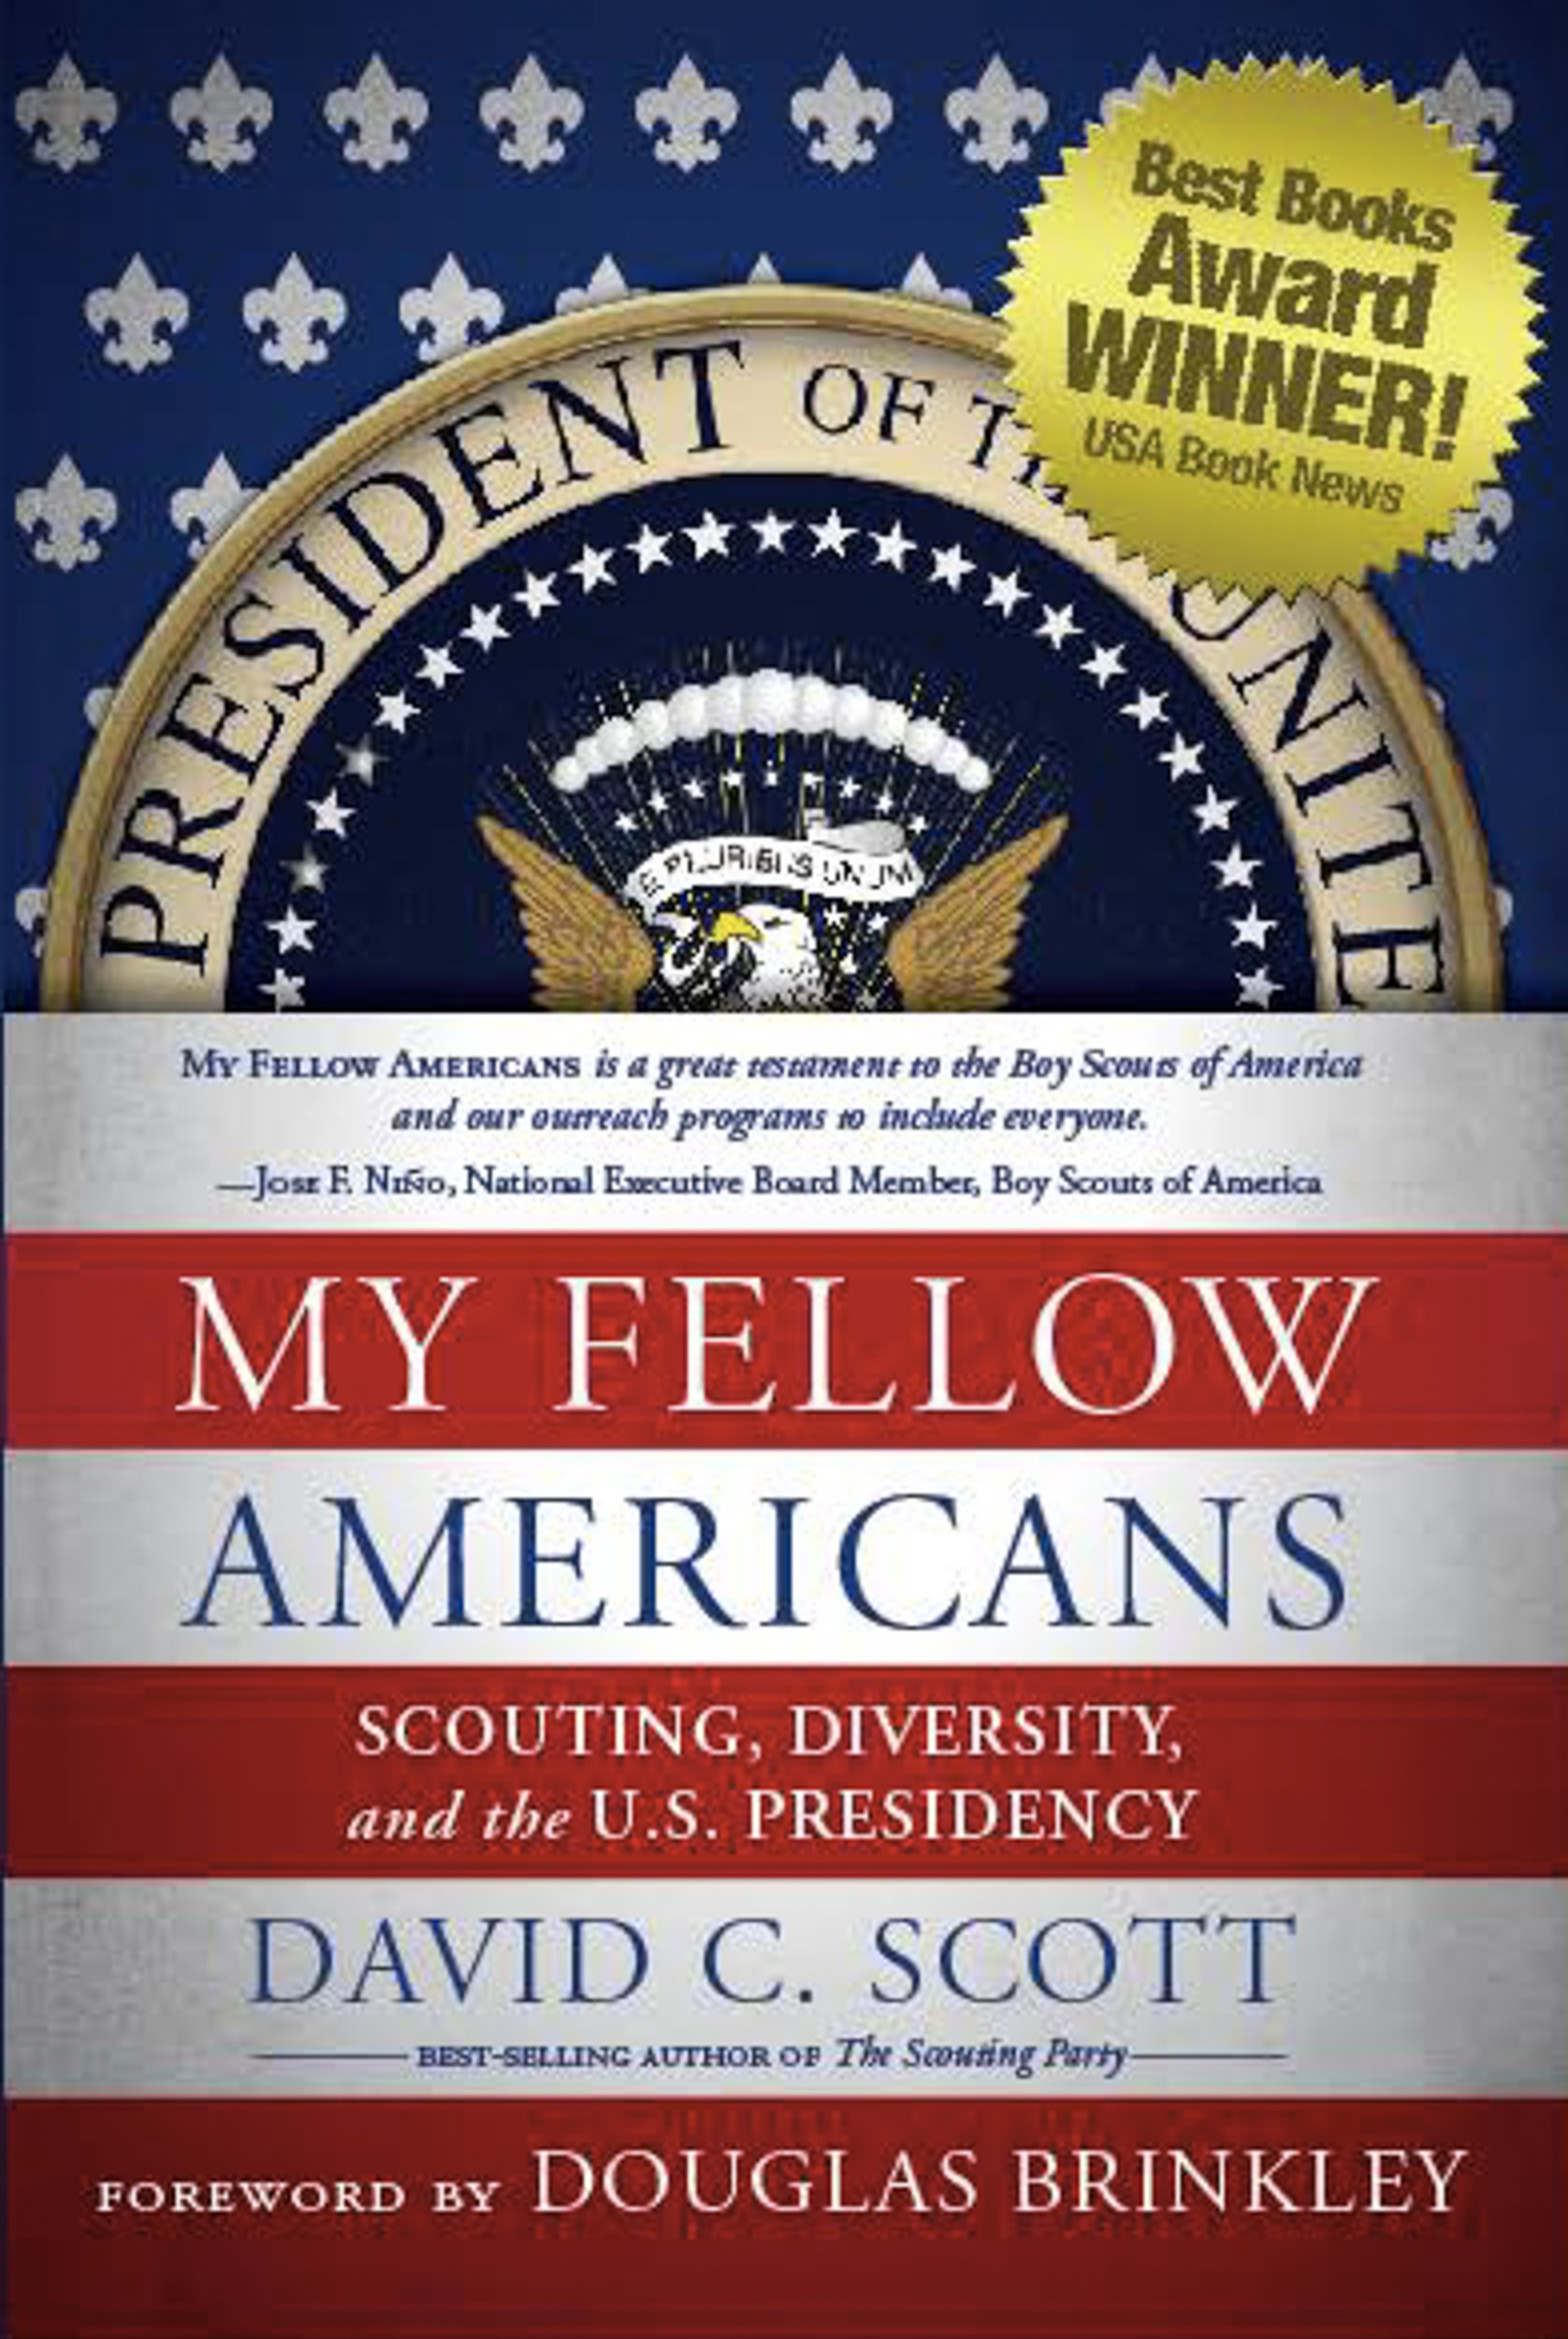 My Fellow Americans: Scouting, Diversity, and the U.S. Presidency by WindRush Publishers